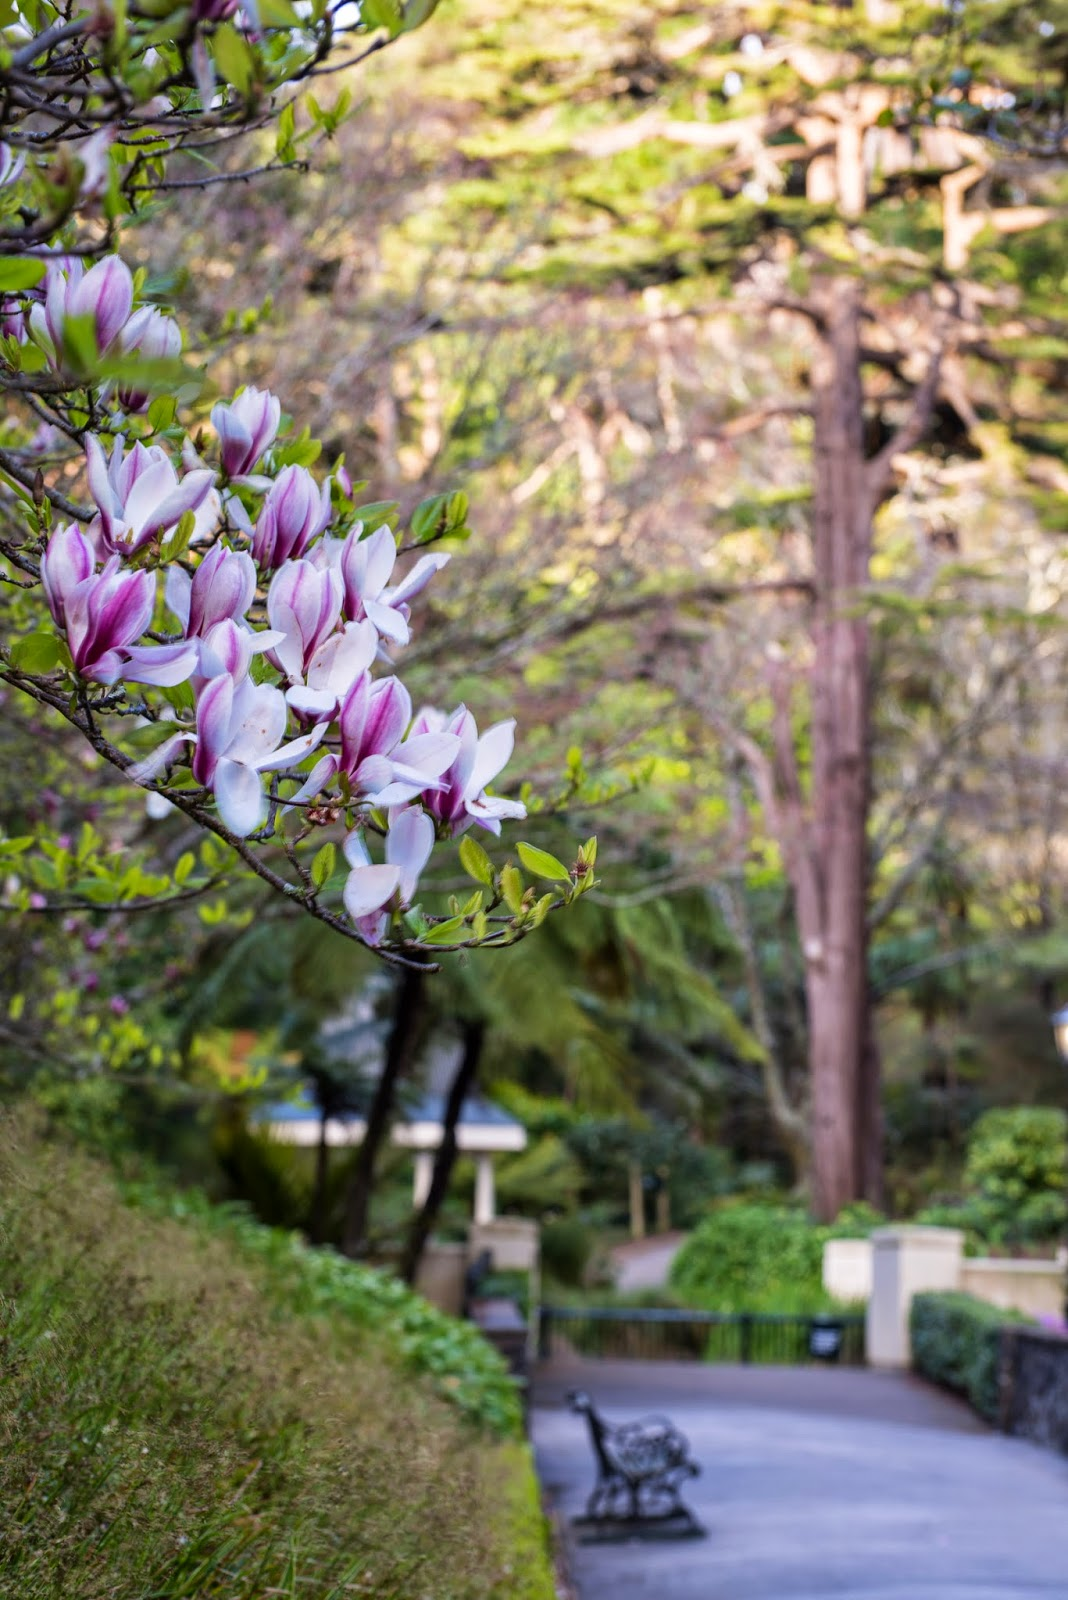 magnolia in bloom at wellingtong gardens